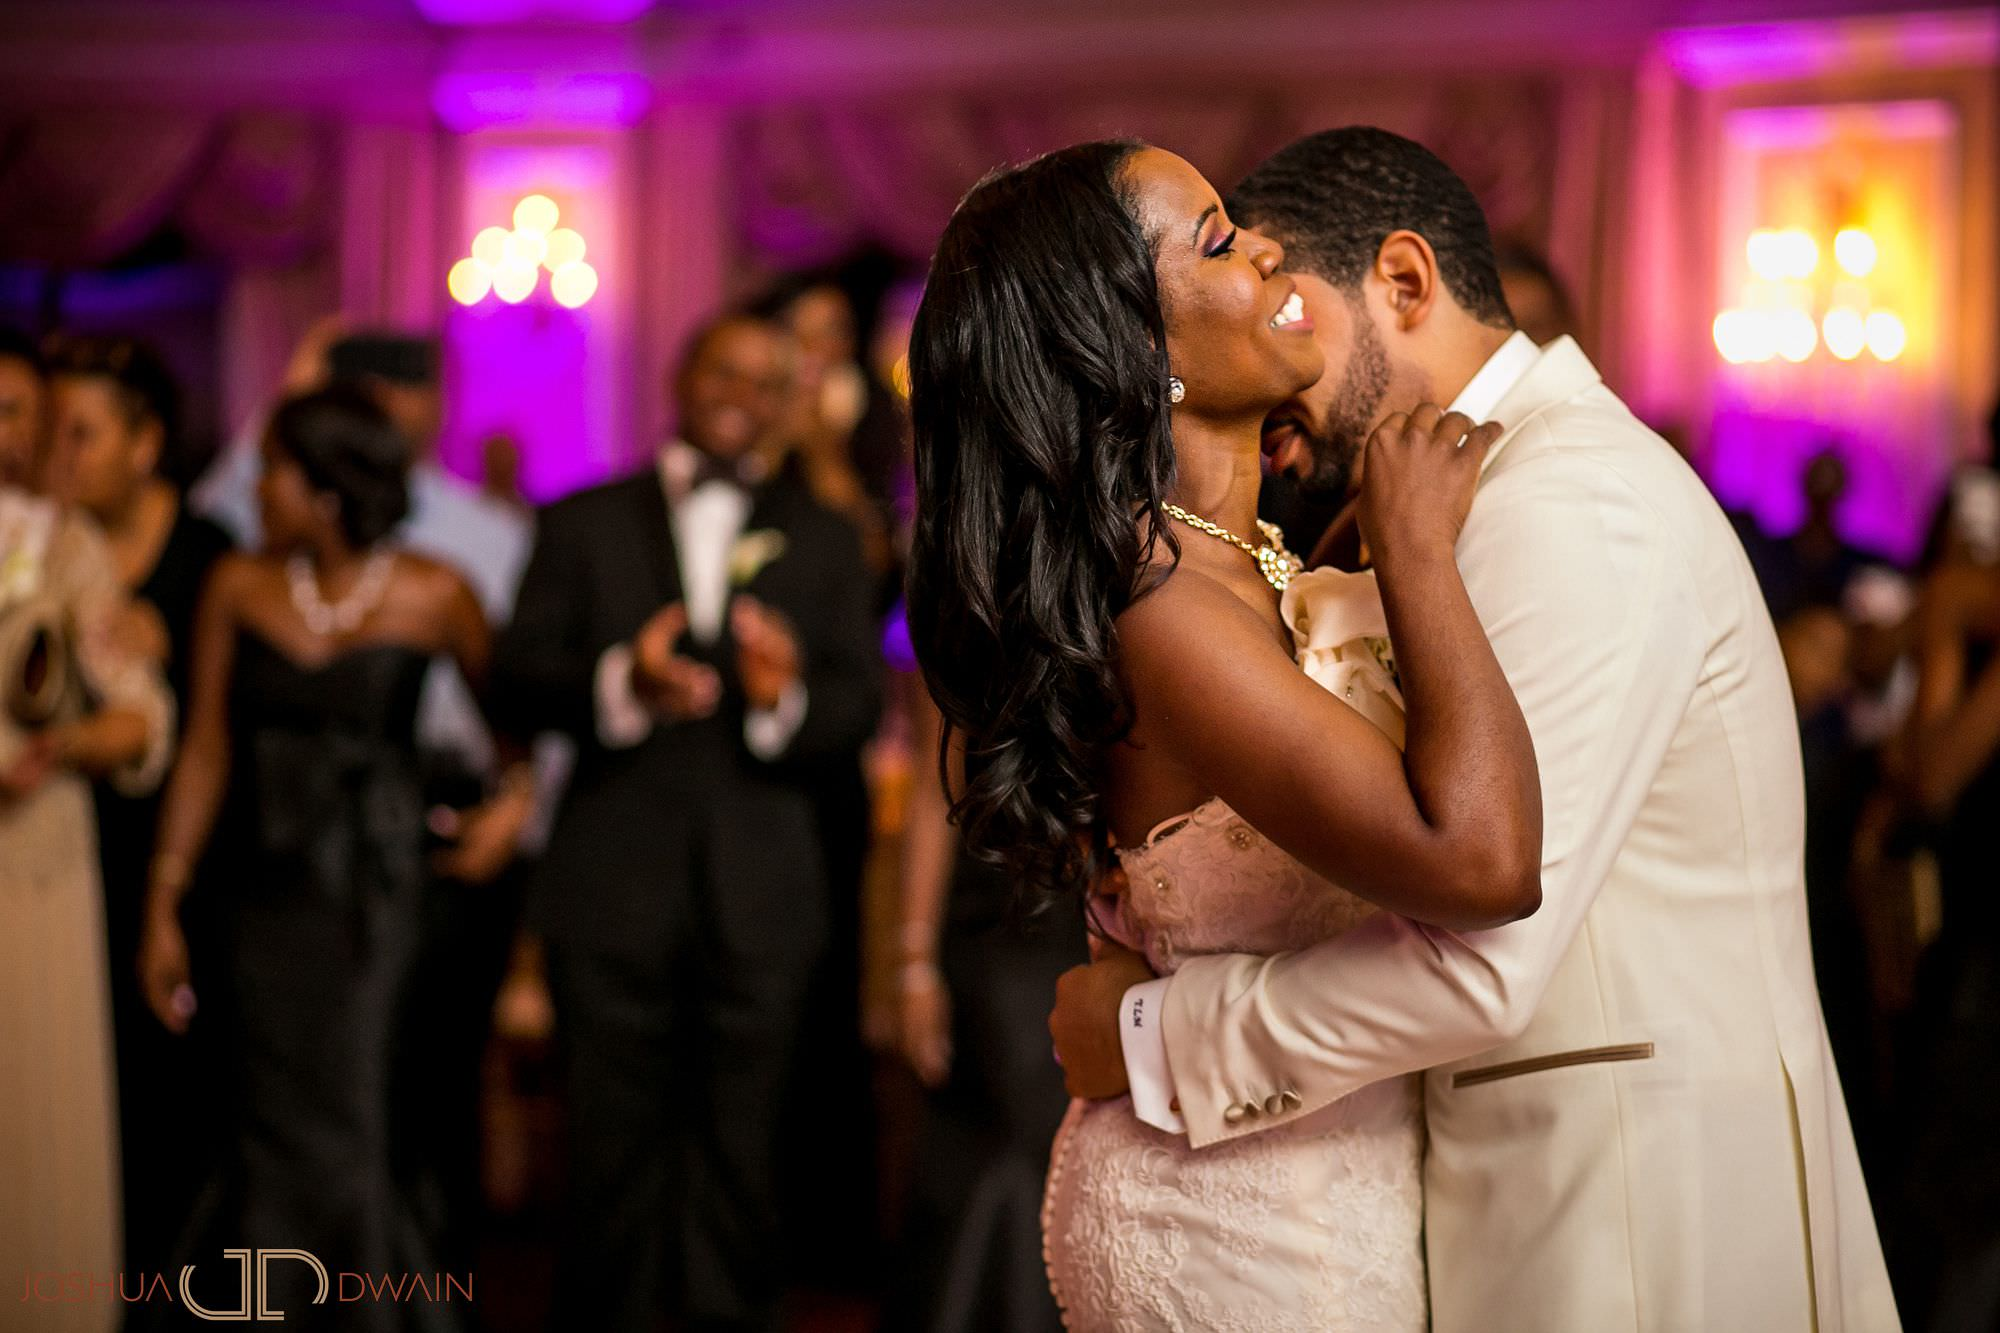 Juliette & Terrance's Wedding at Oheka Castle in Huntington, NY